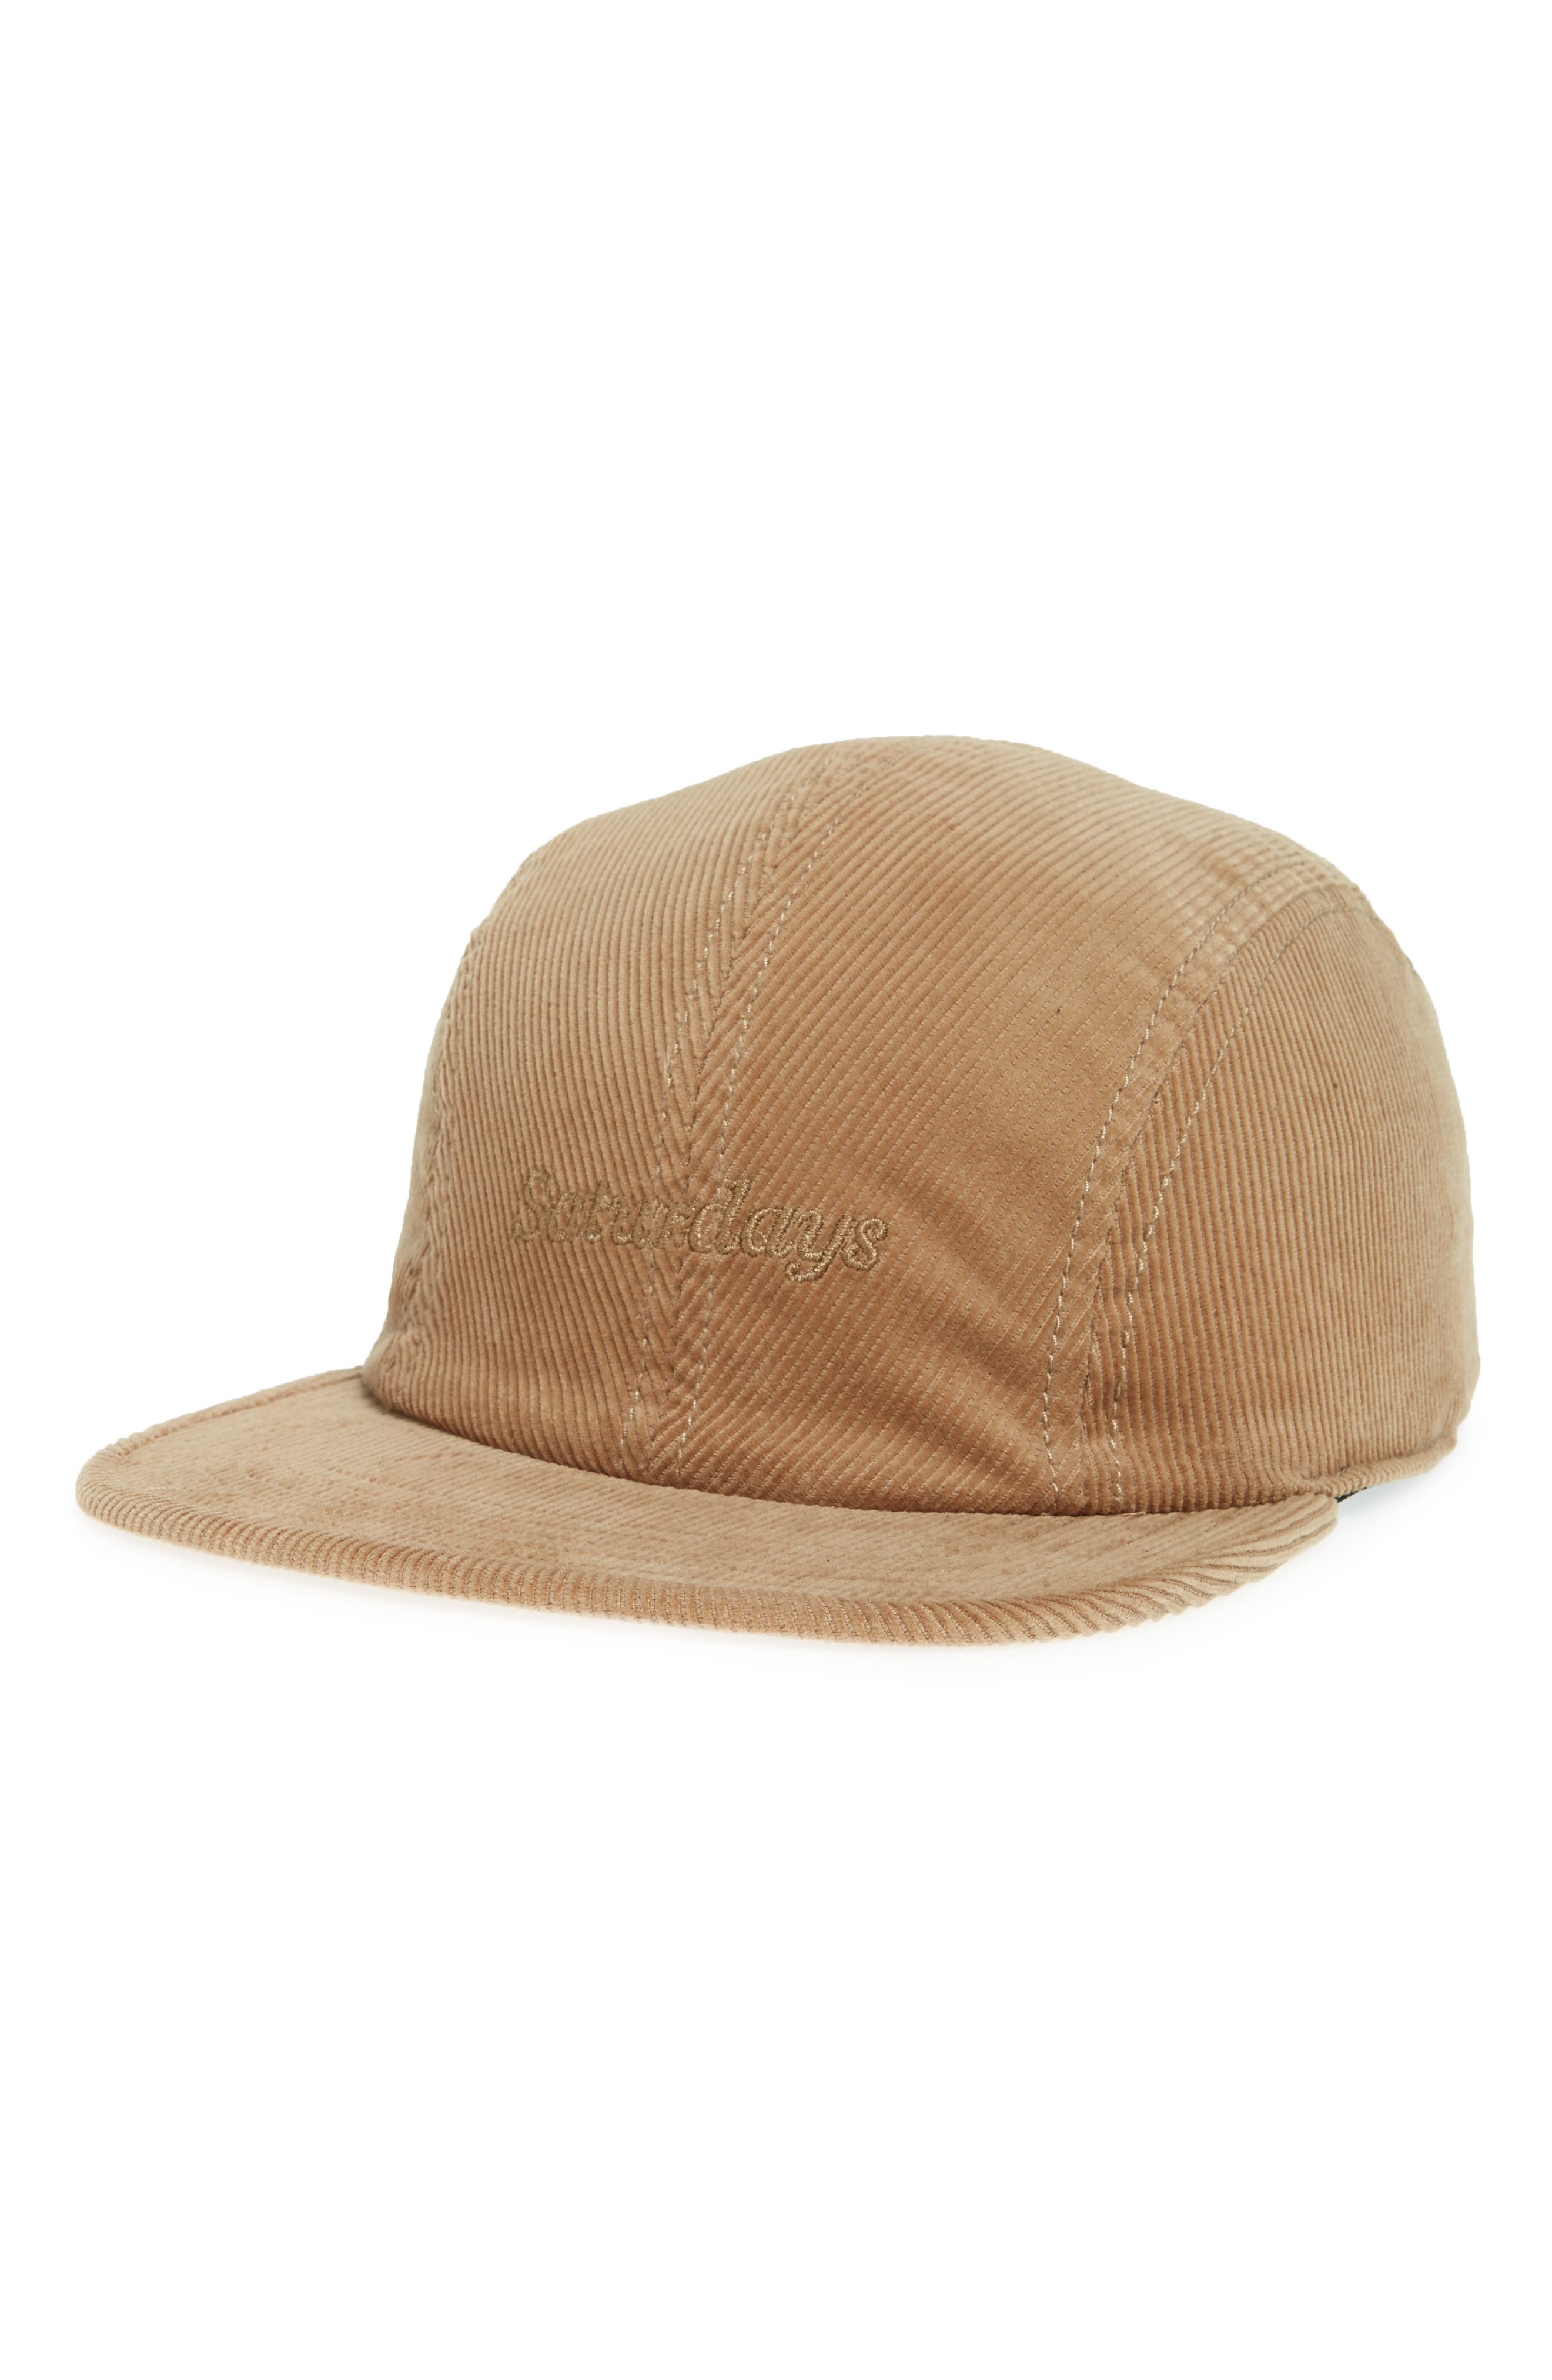 Russel Baseball Cap,                             Main thumbnail 1, color,                             BRITISH KHAKI